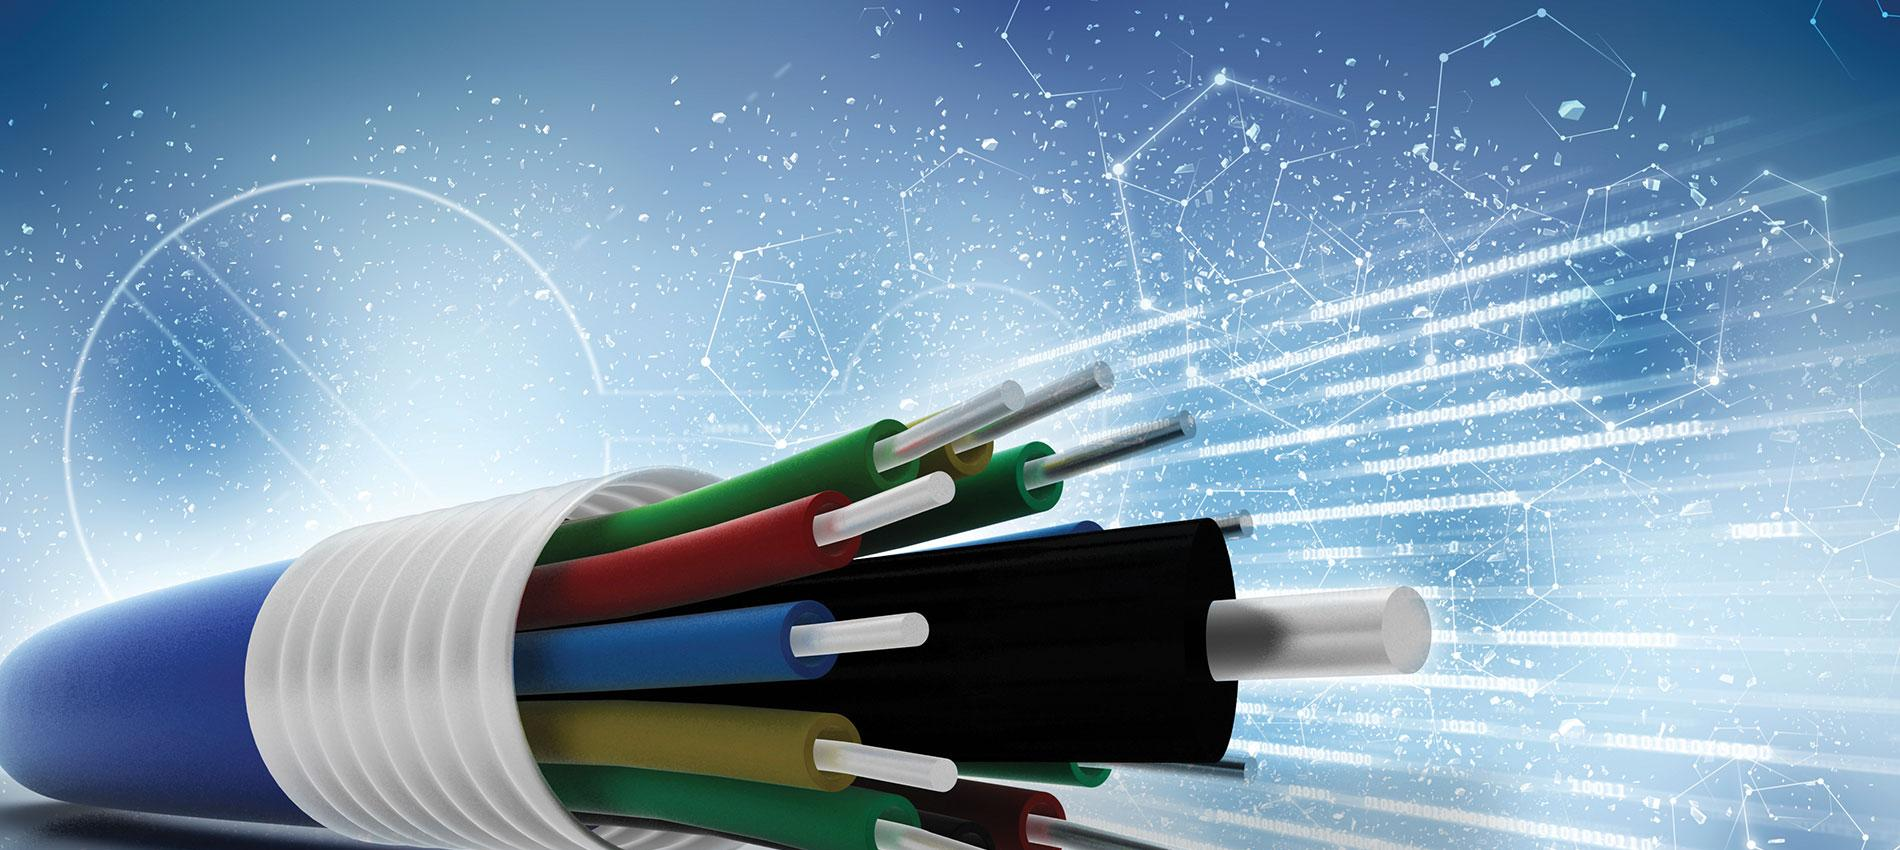 Fiber Optics Image Credit: Shutterstock / Ranjith Ravindran